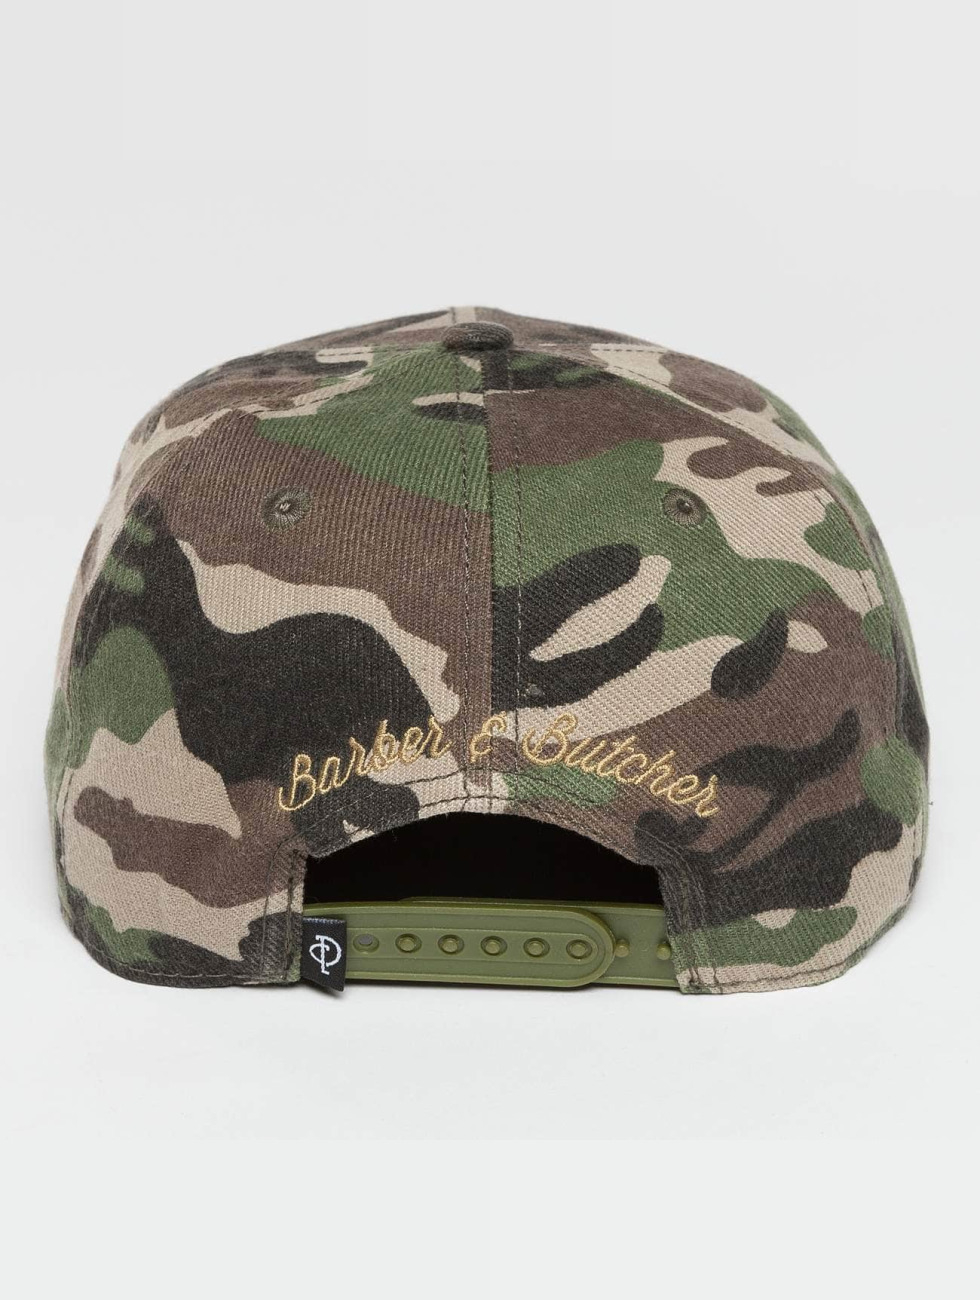 Distorted People Casquette Snapback & Strapback BB Blades camouflage